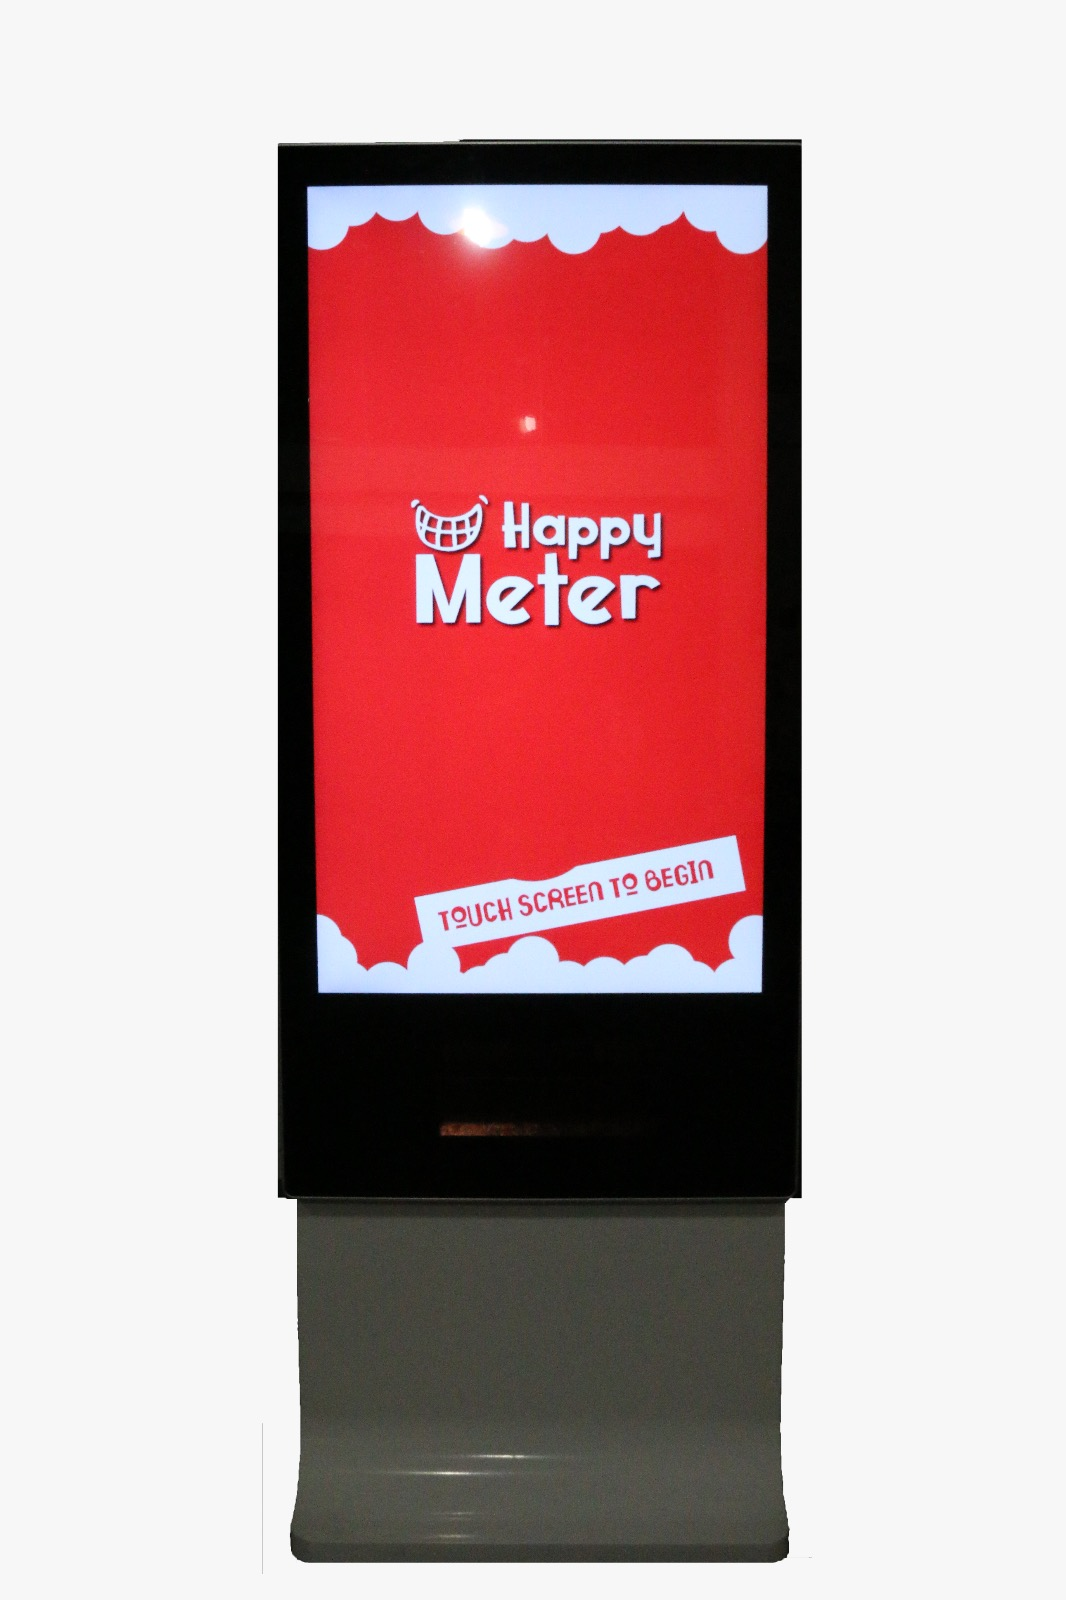 Measure your smile.The bigger your smile, the higher score you will get.Experimental Marketing.